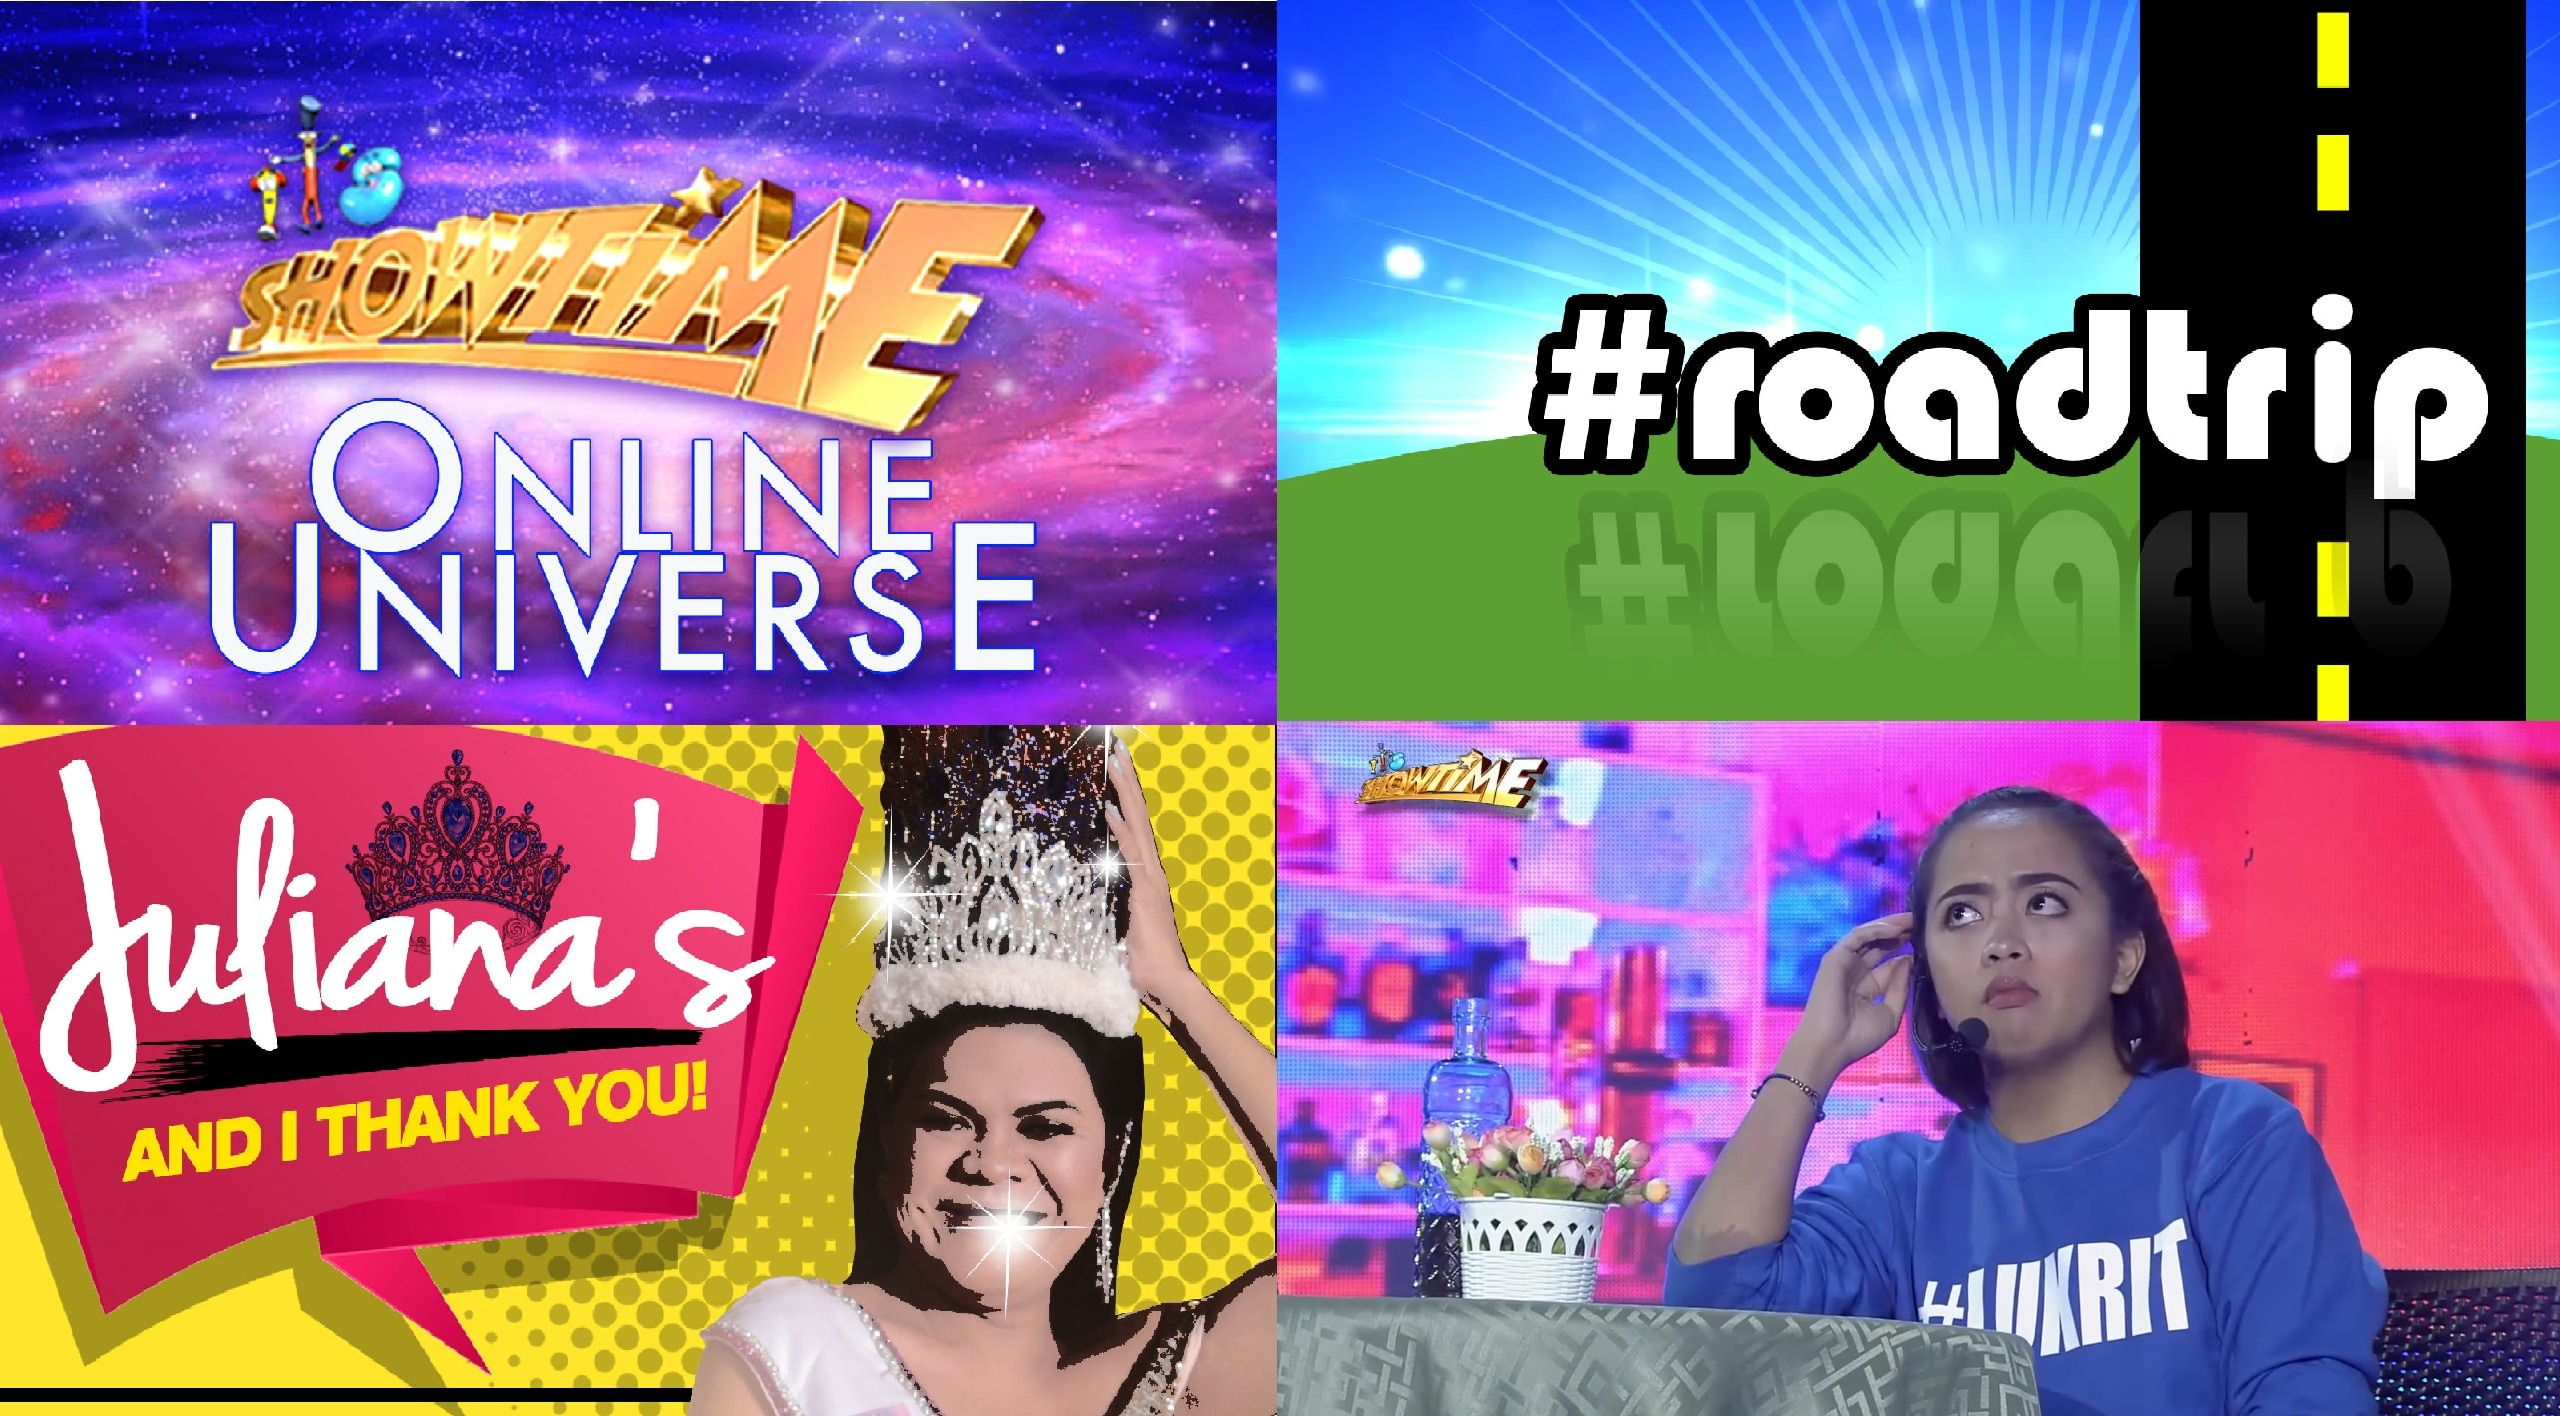 """It's Showtime"" launches 3 new digital shows on YouTube"